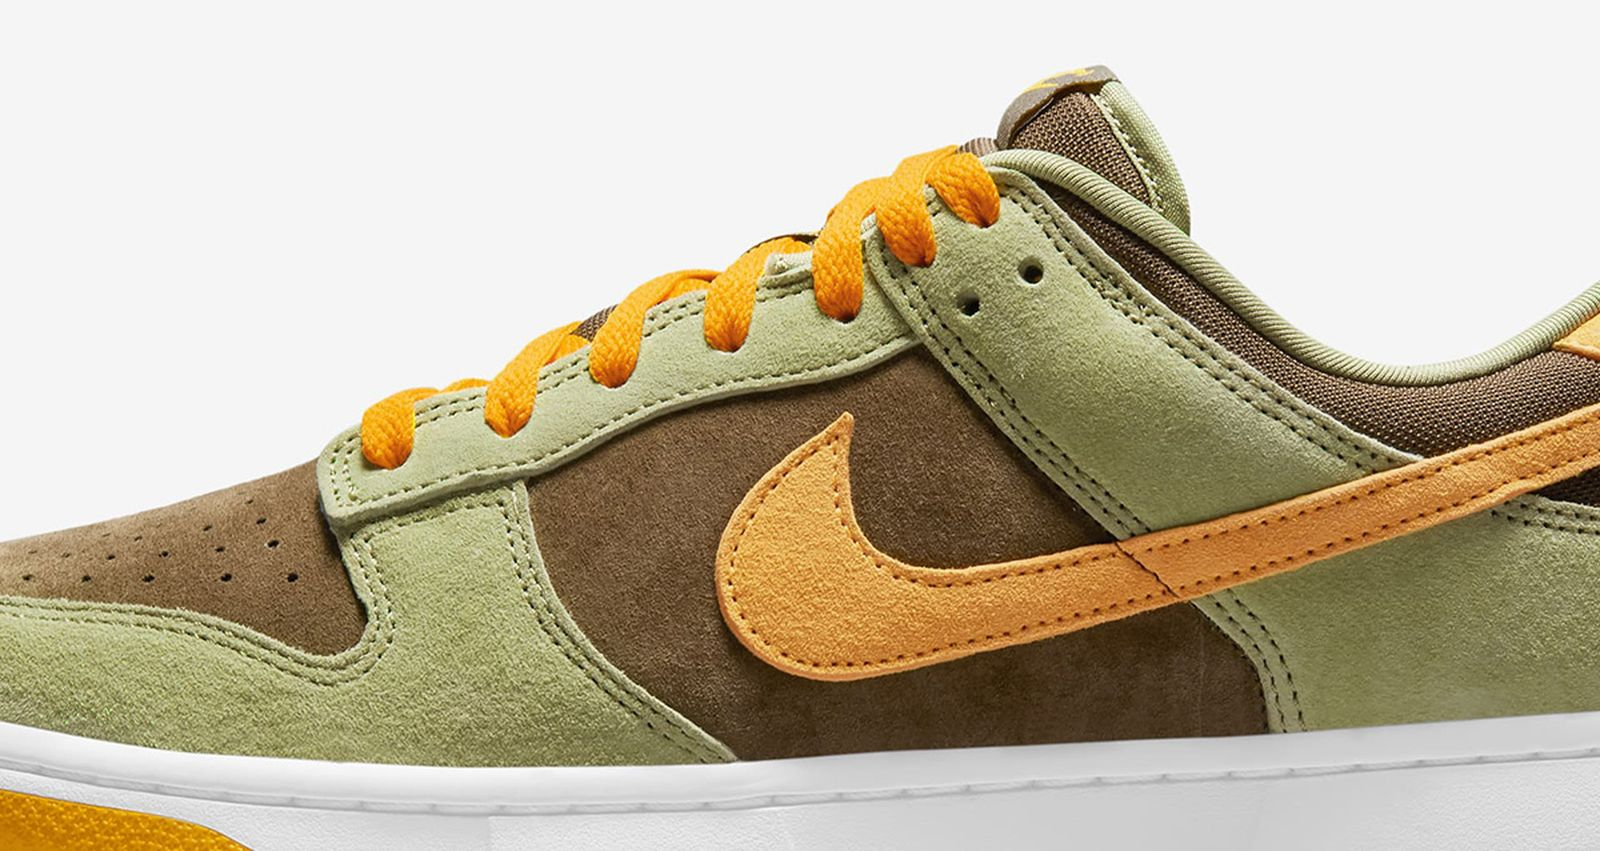 nike-dunk-low-dusty-olive-release-date-price-06